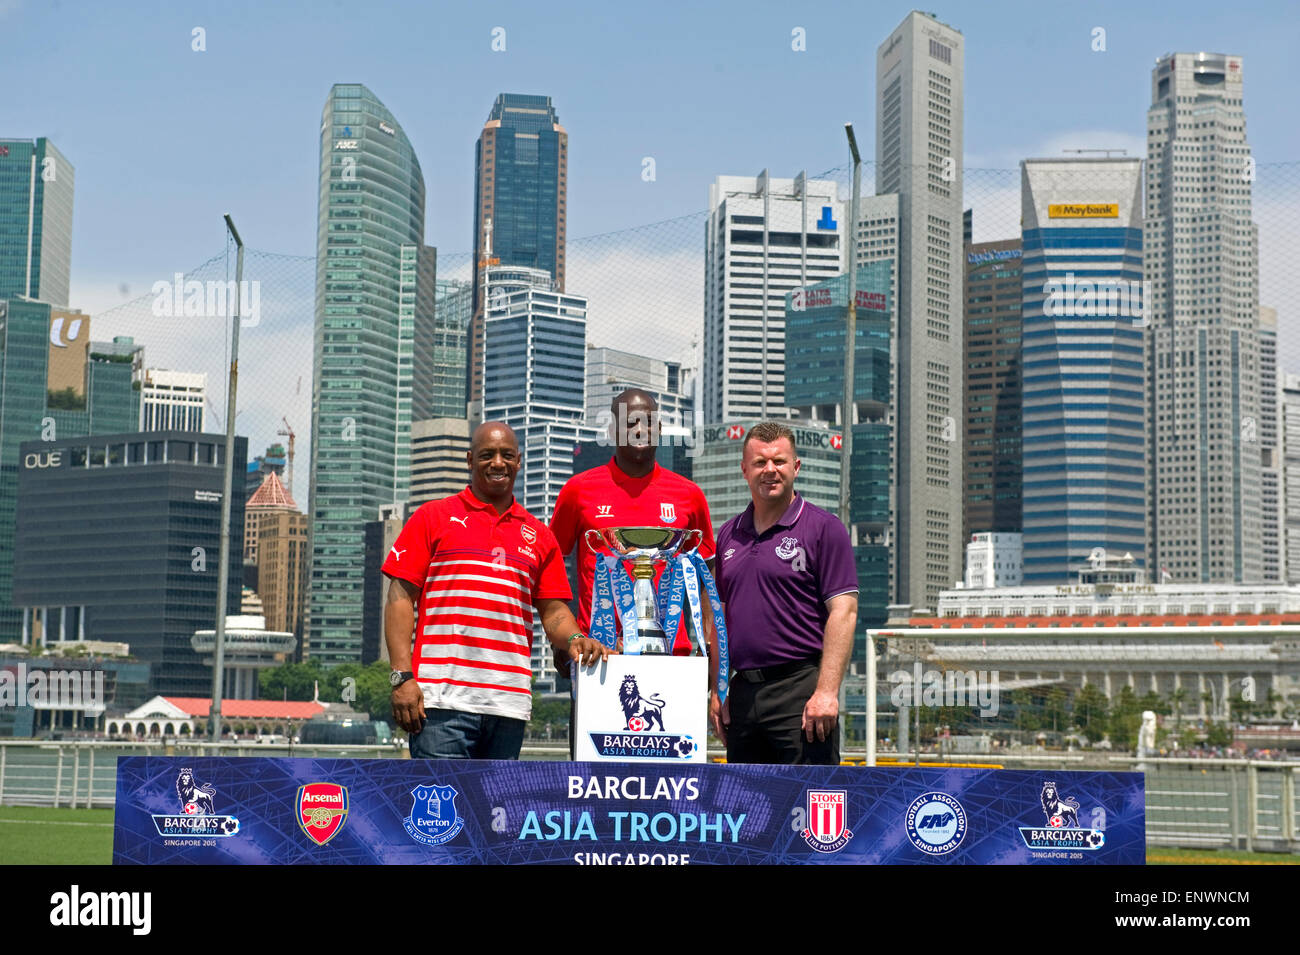 Singapore, Singapore. 12th May, 2015. Former Barclays Premier League (BPL) Arsenal player Ian Wright (L), former Stock Photo